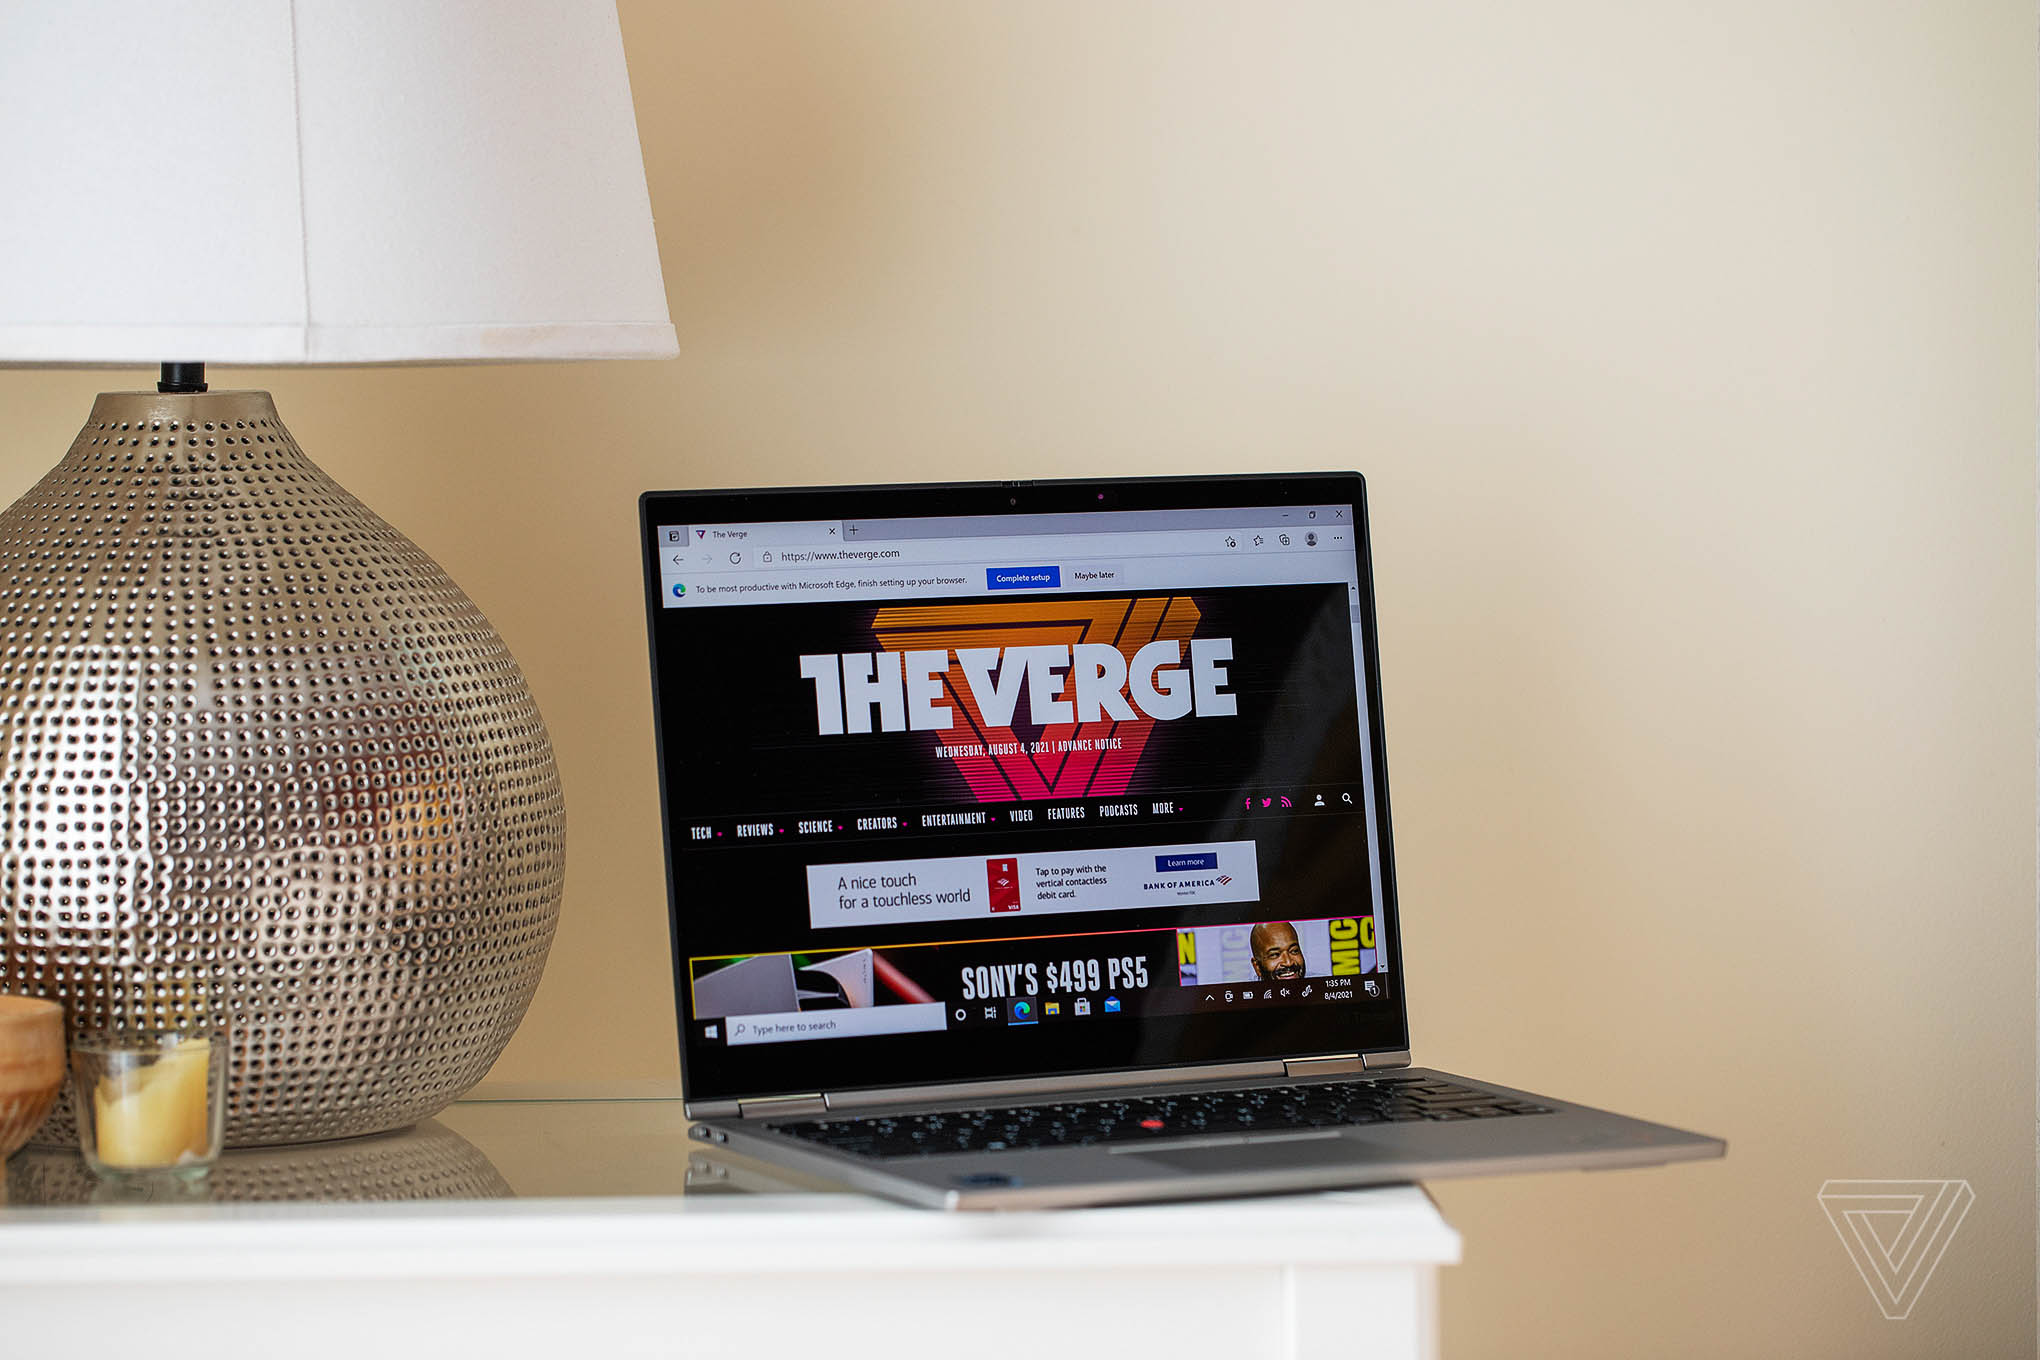 The Lenovo ThinkPad X1 Titanium Yoga open on a bedside table next to a lamp, angled to the right. The screen displays The Verge's homepage.